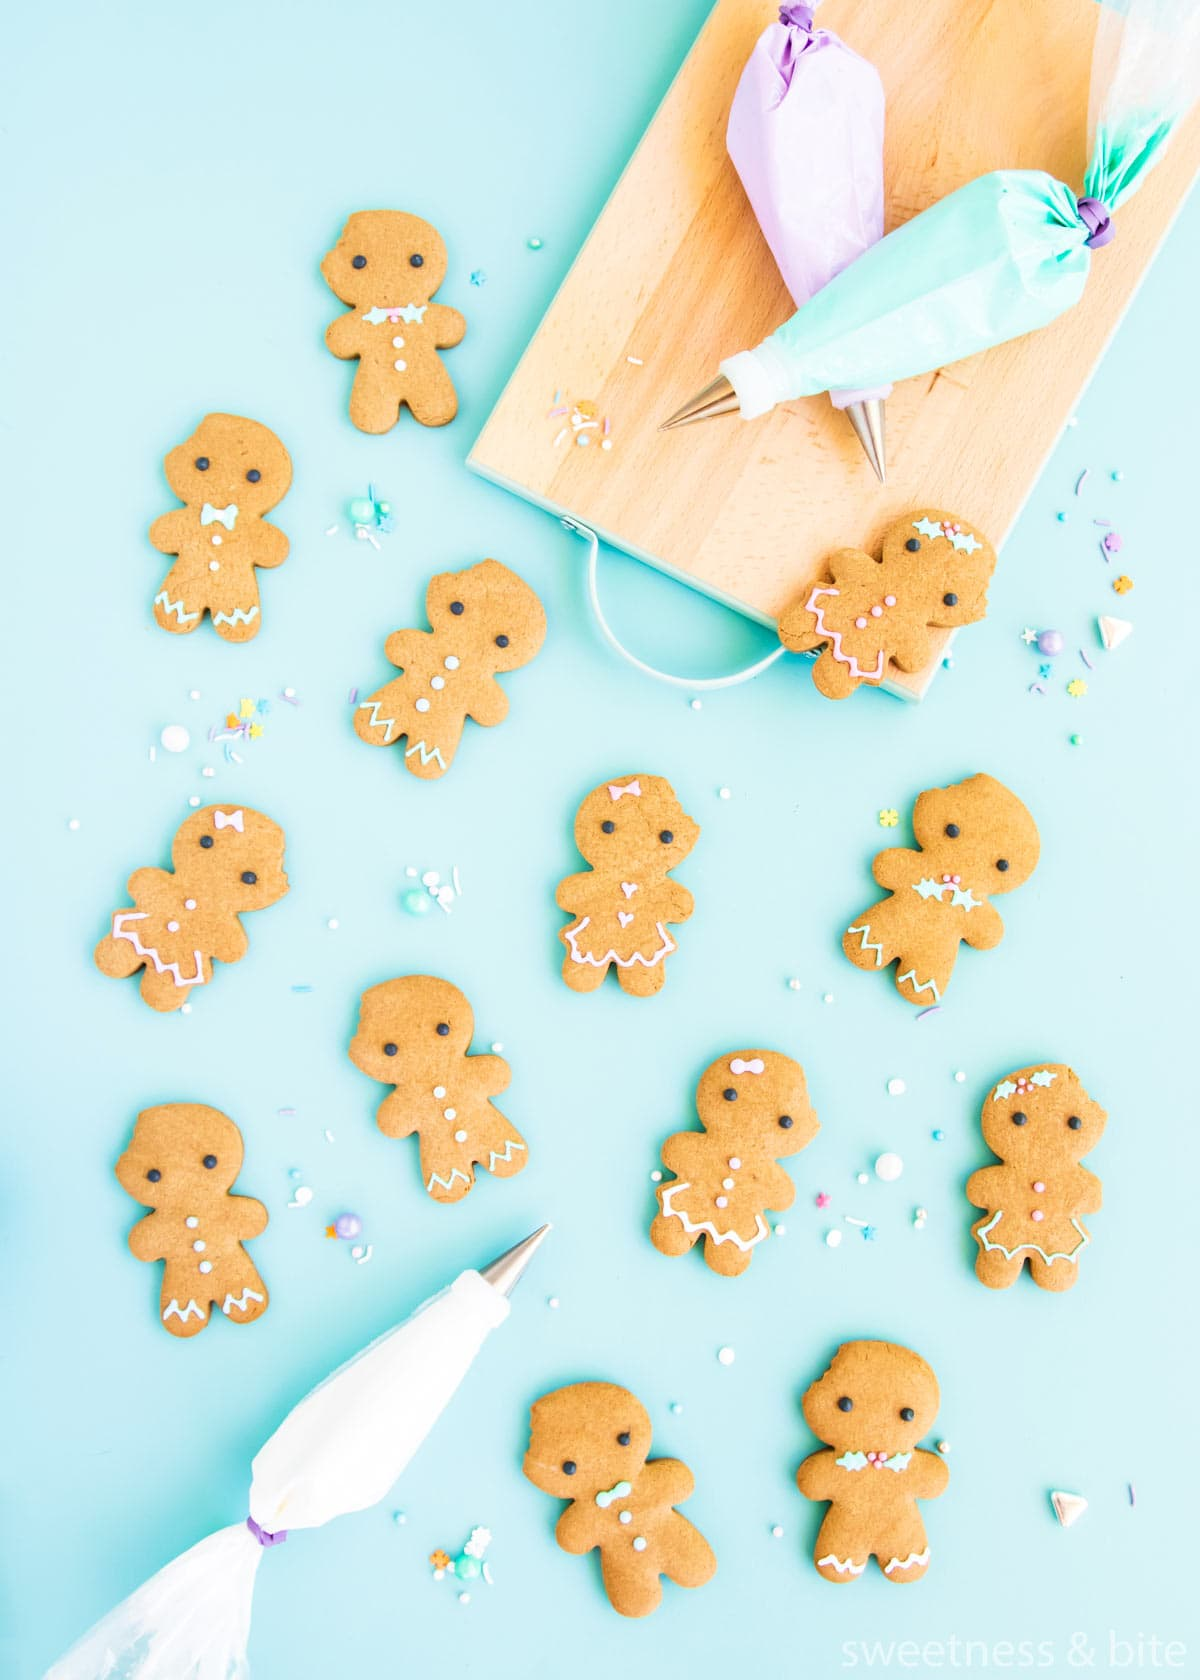 Gingerbread people cookies on a blue background, with pastel coloured royal icing in piping bags.